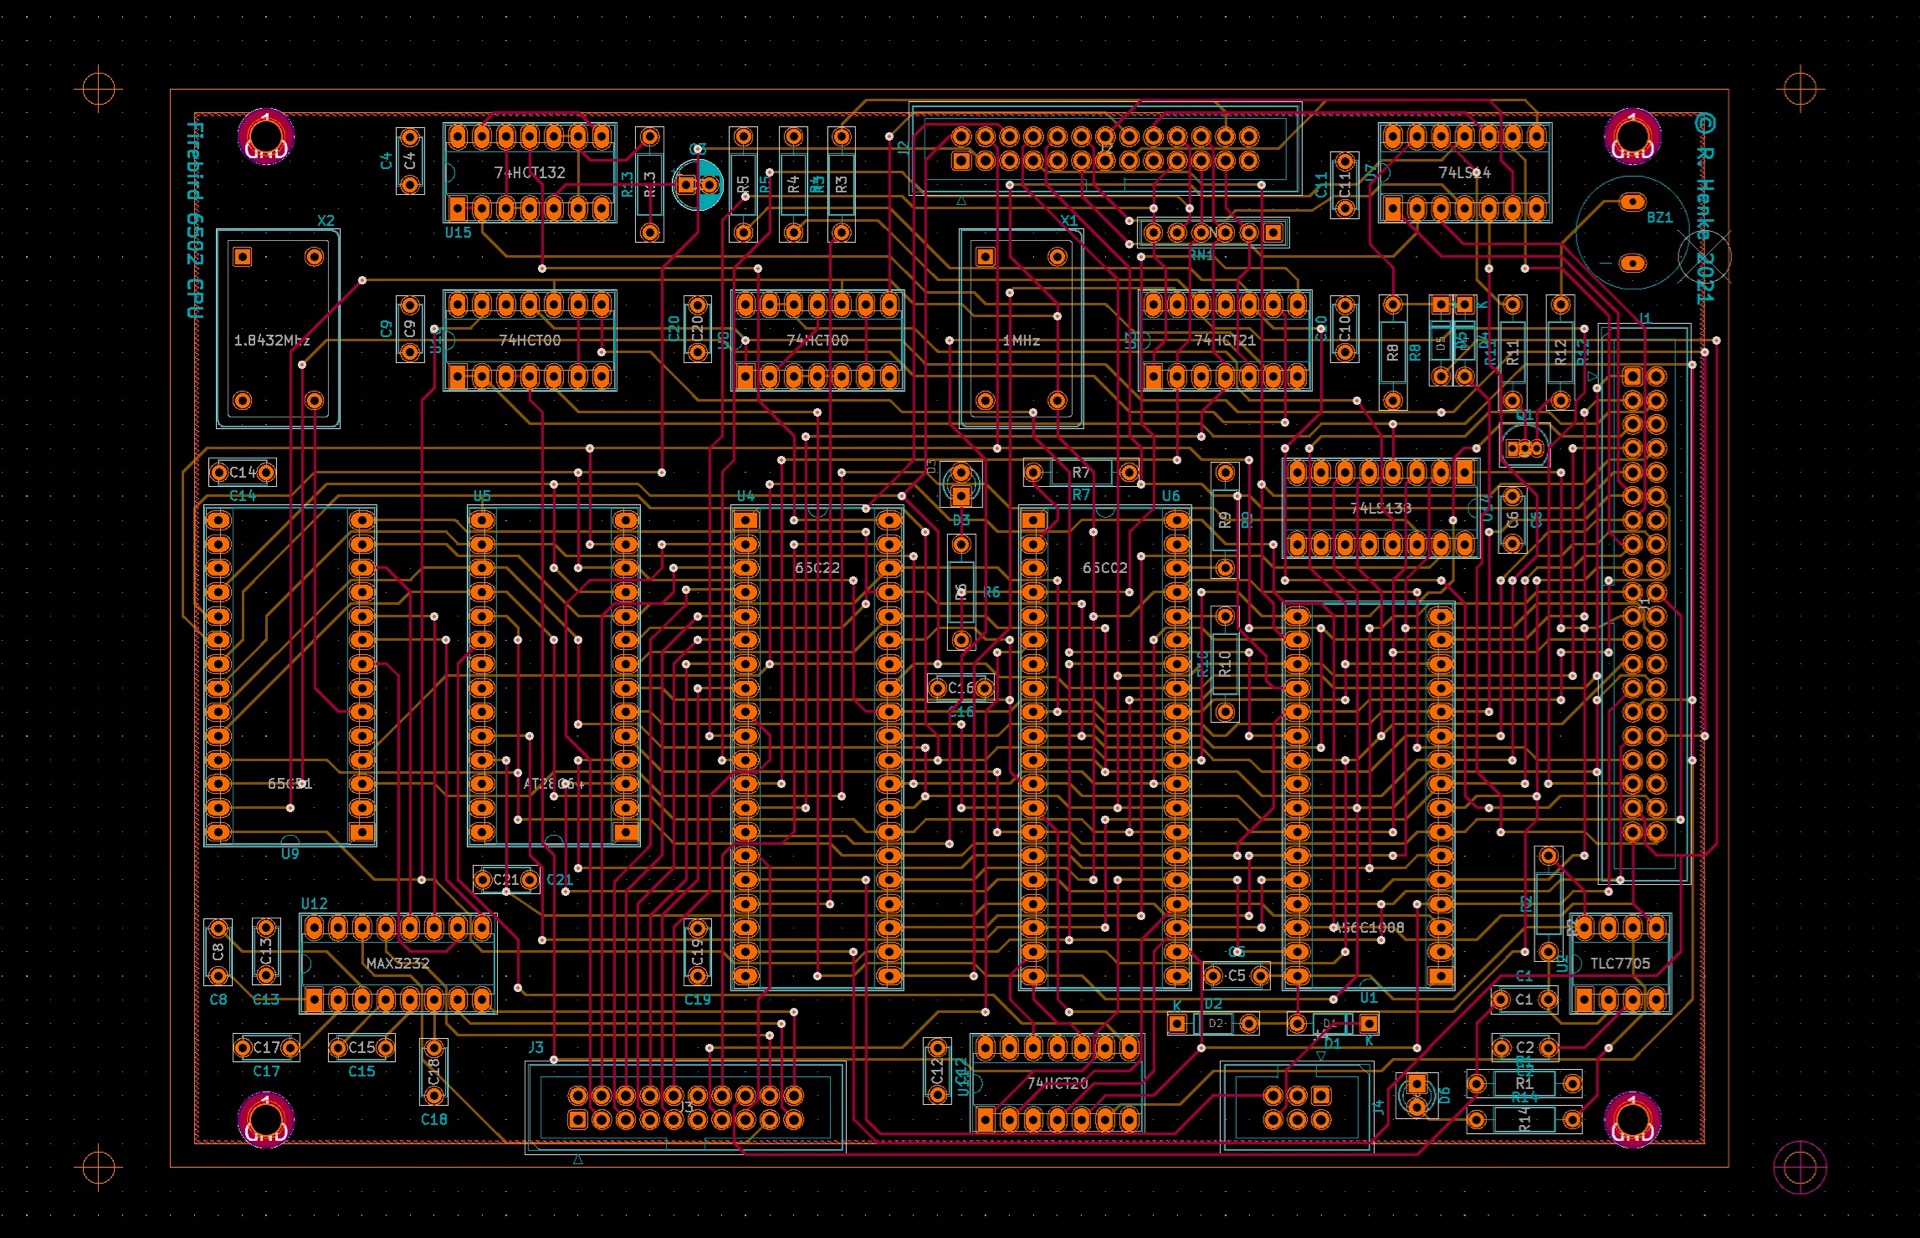 Firebird CPU board